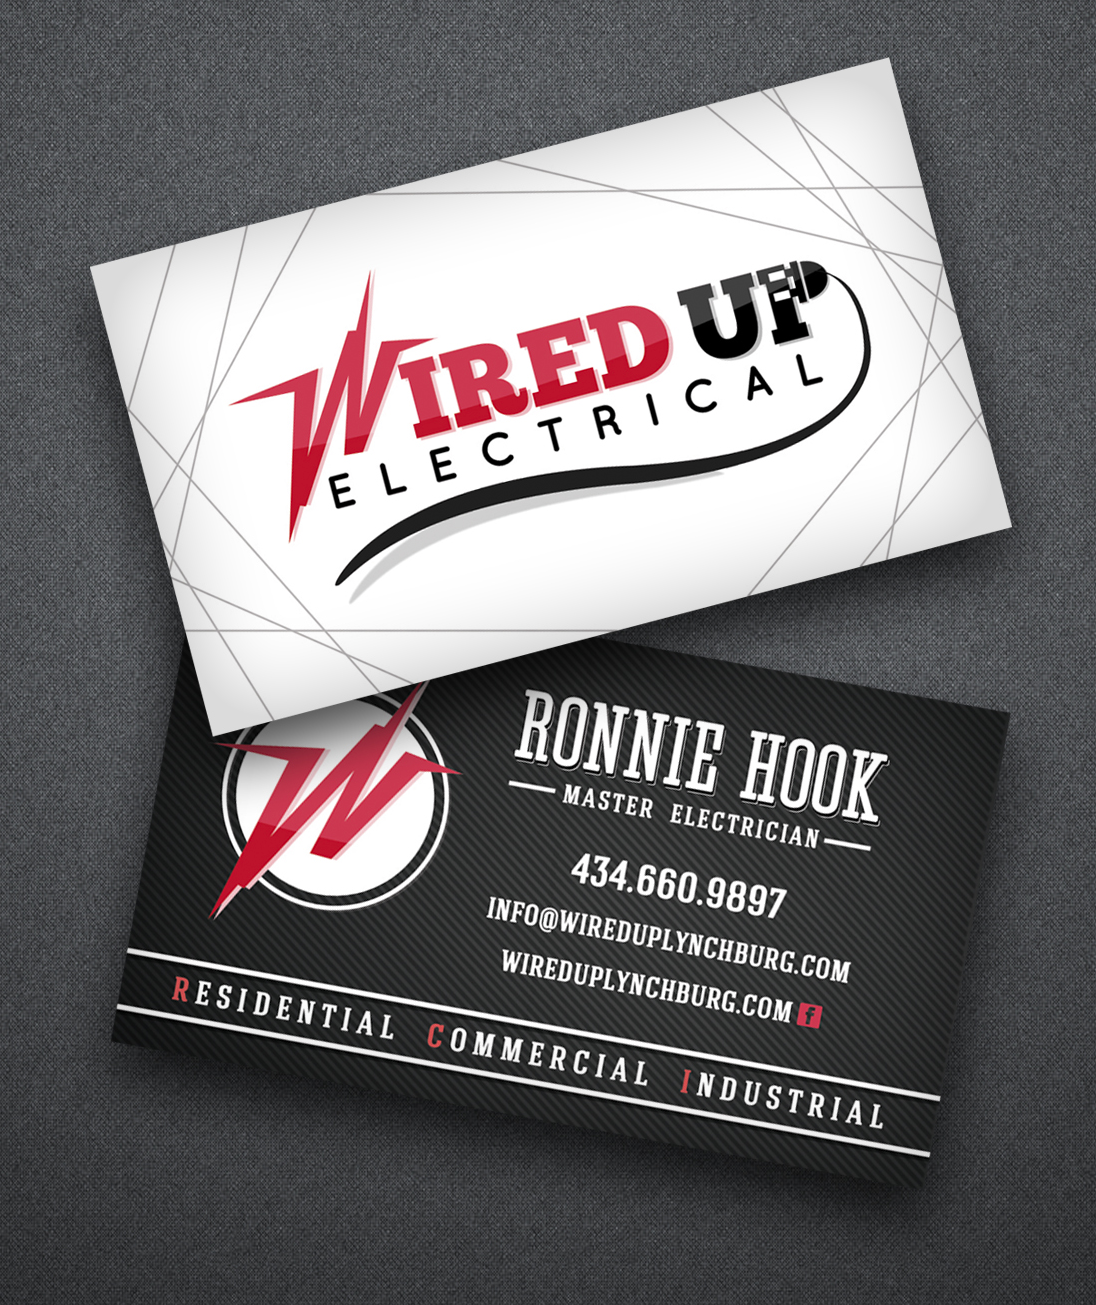 Designed Business Cards For An Electrician Design Pinterest